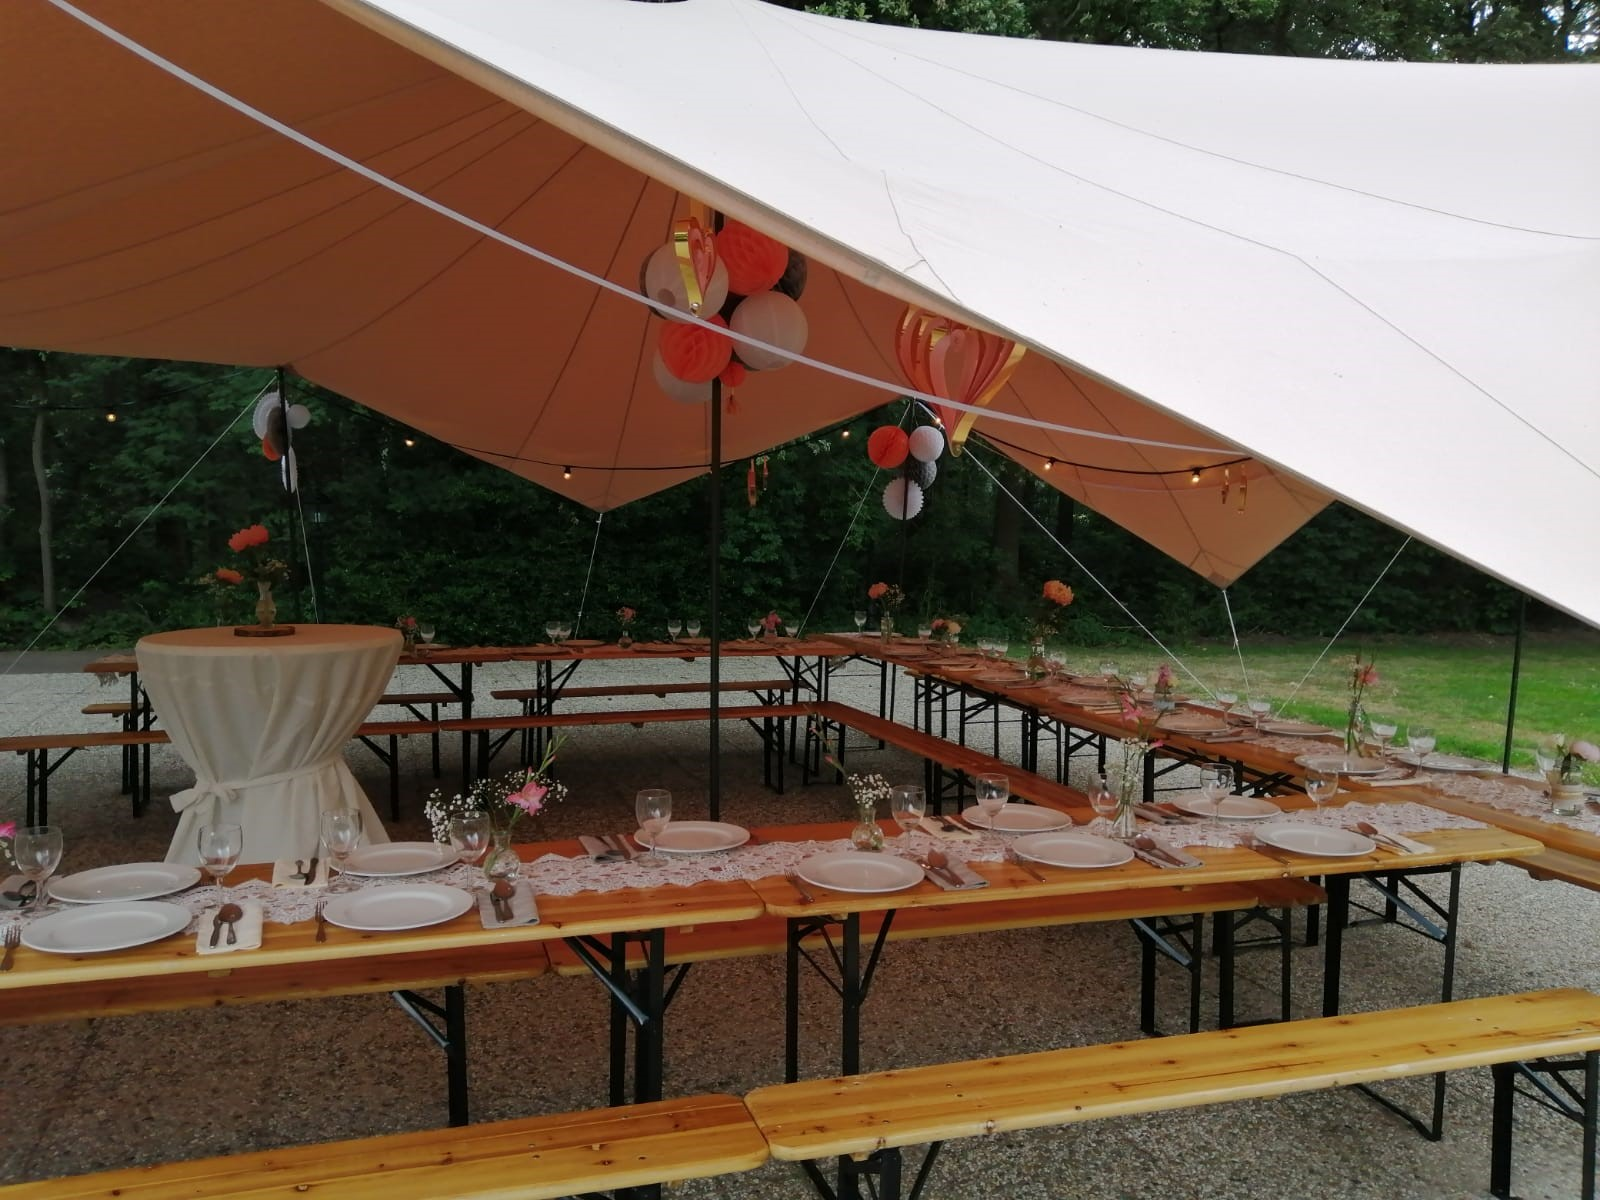 diner-in-tent